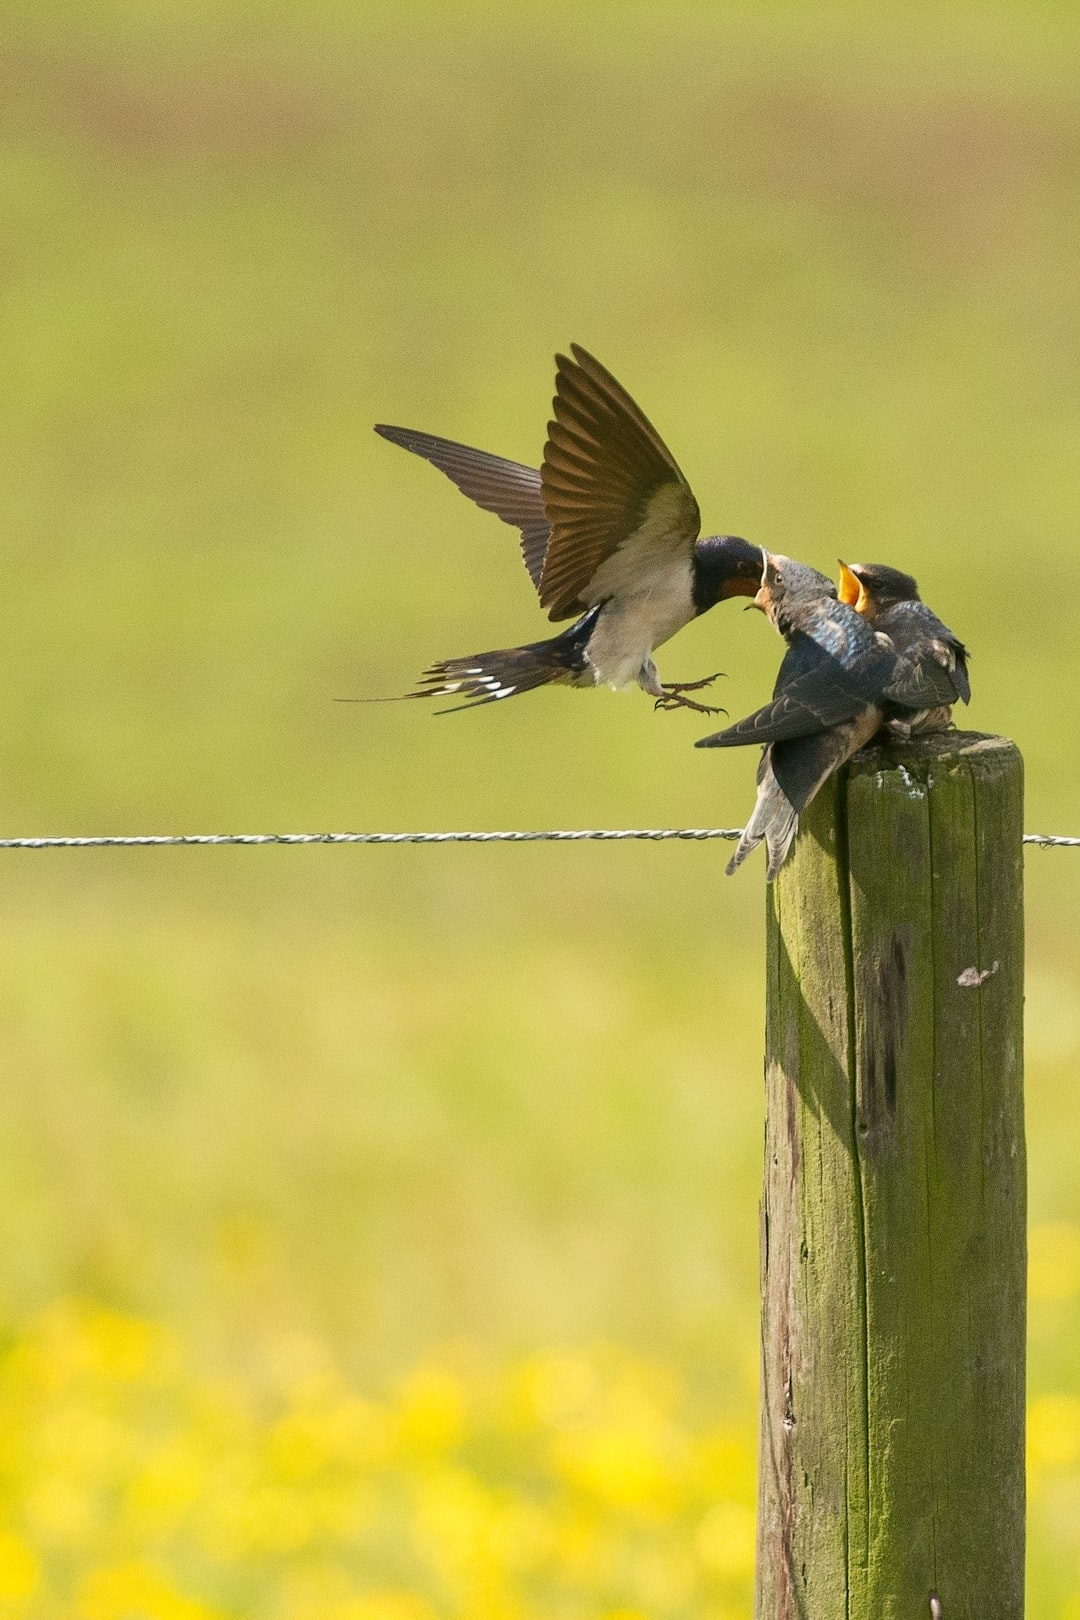 Feeding Swallow